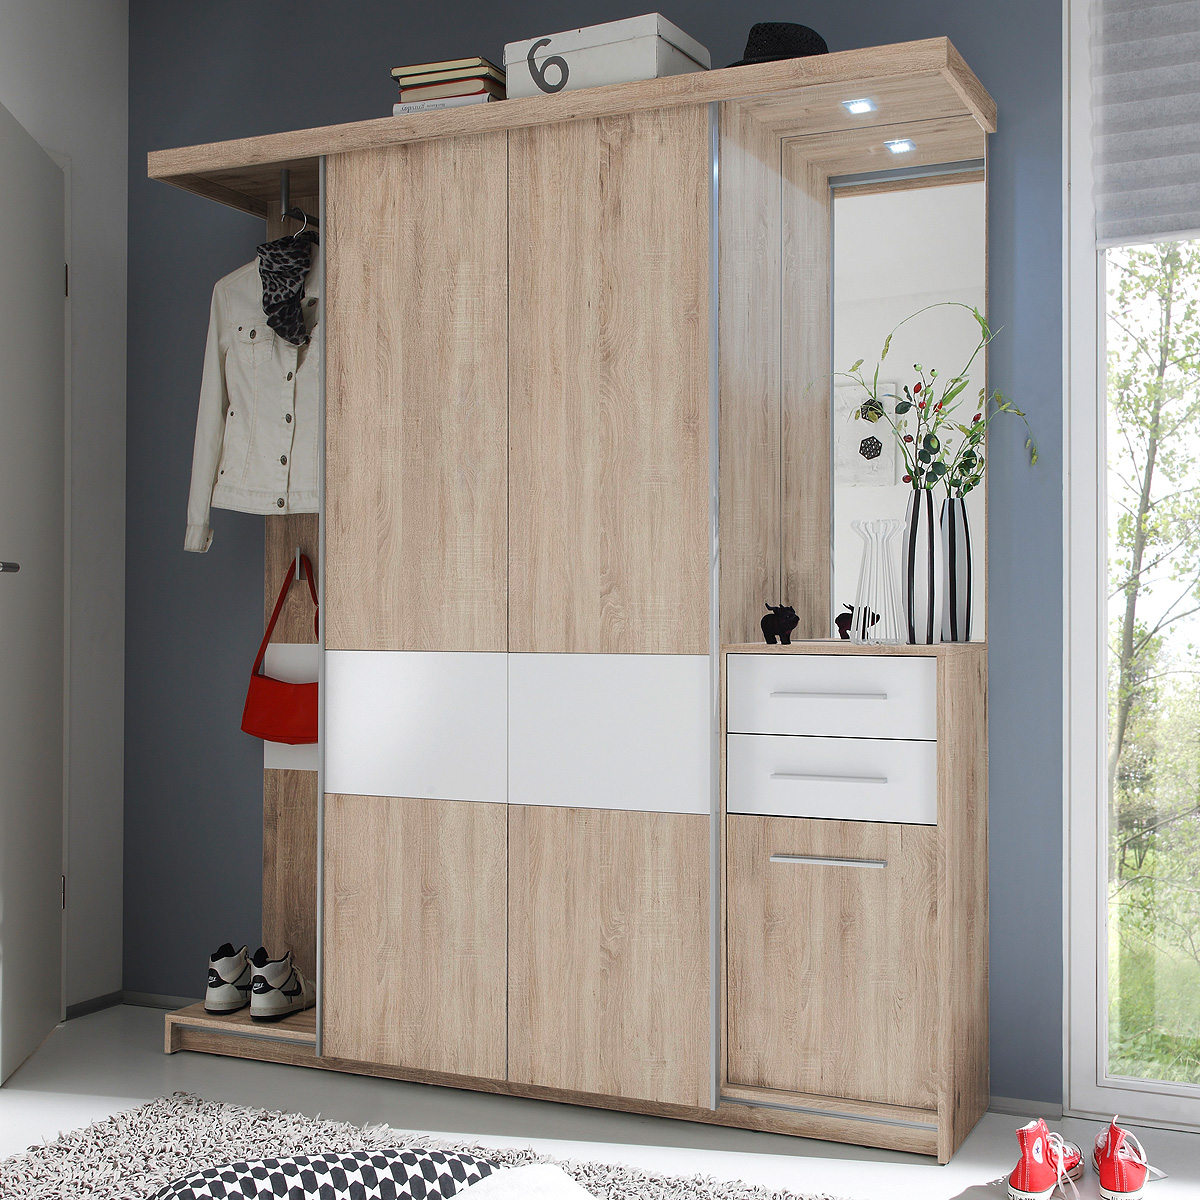 kompaktgarderobe swing garderobe flurm bel sonoma eiche wei mit led eur 299 95 picclick de. Black Bedroom Furniture Sets. Home Design Ideas